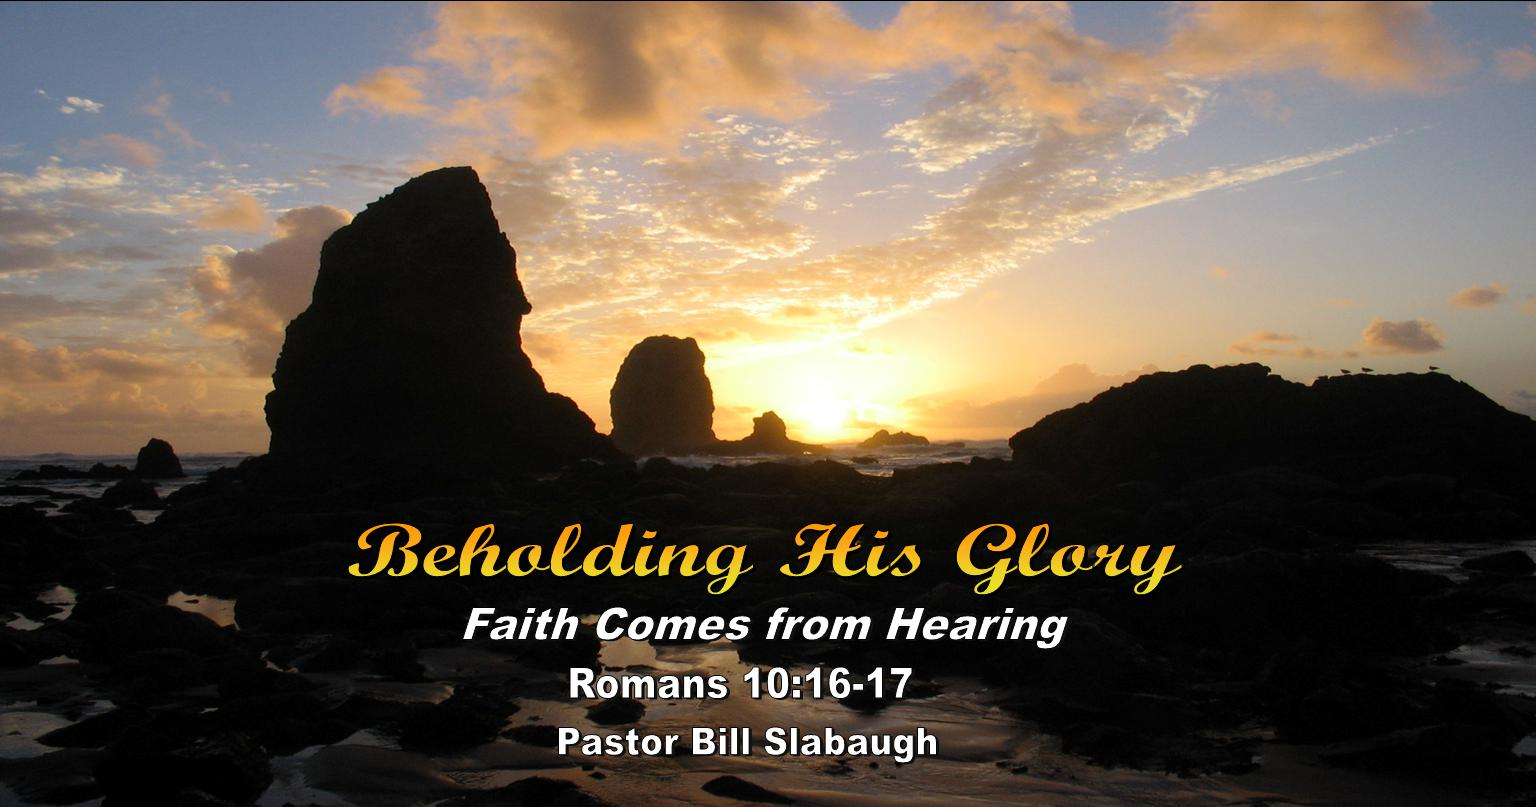 Sermon Outline: Romans 10:16-17 ~ Faith Comes from Hearing